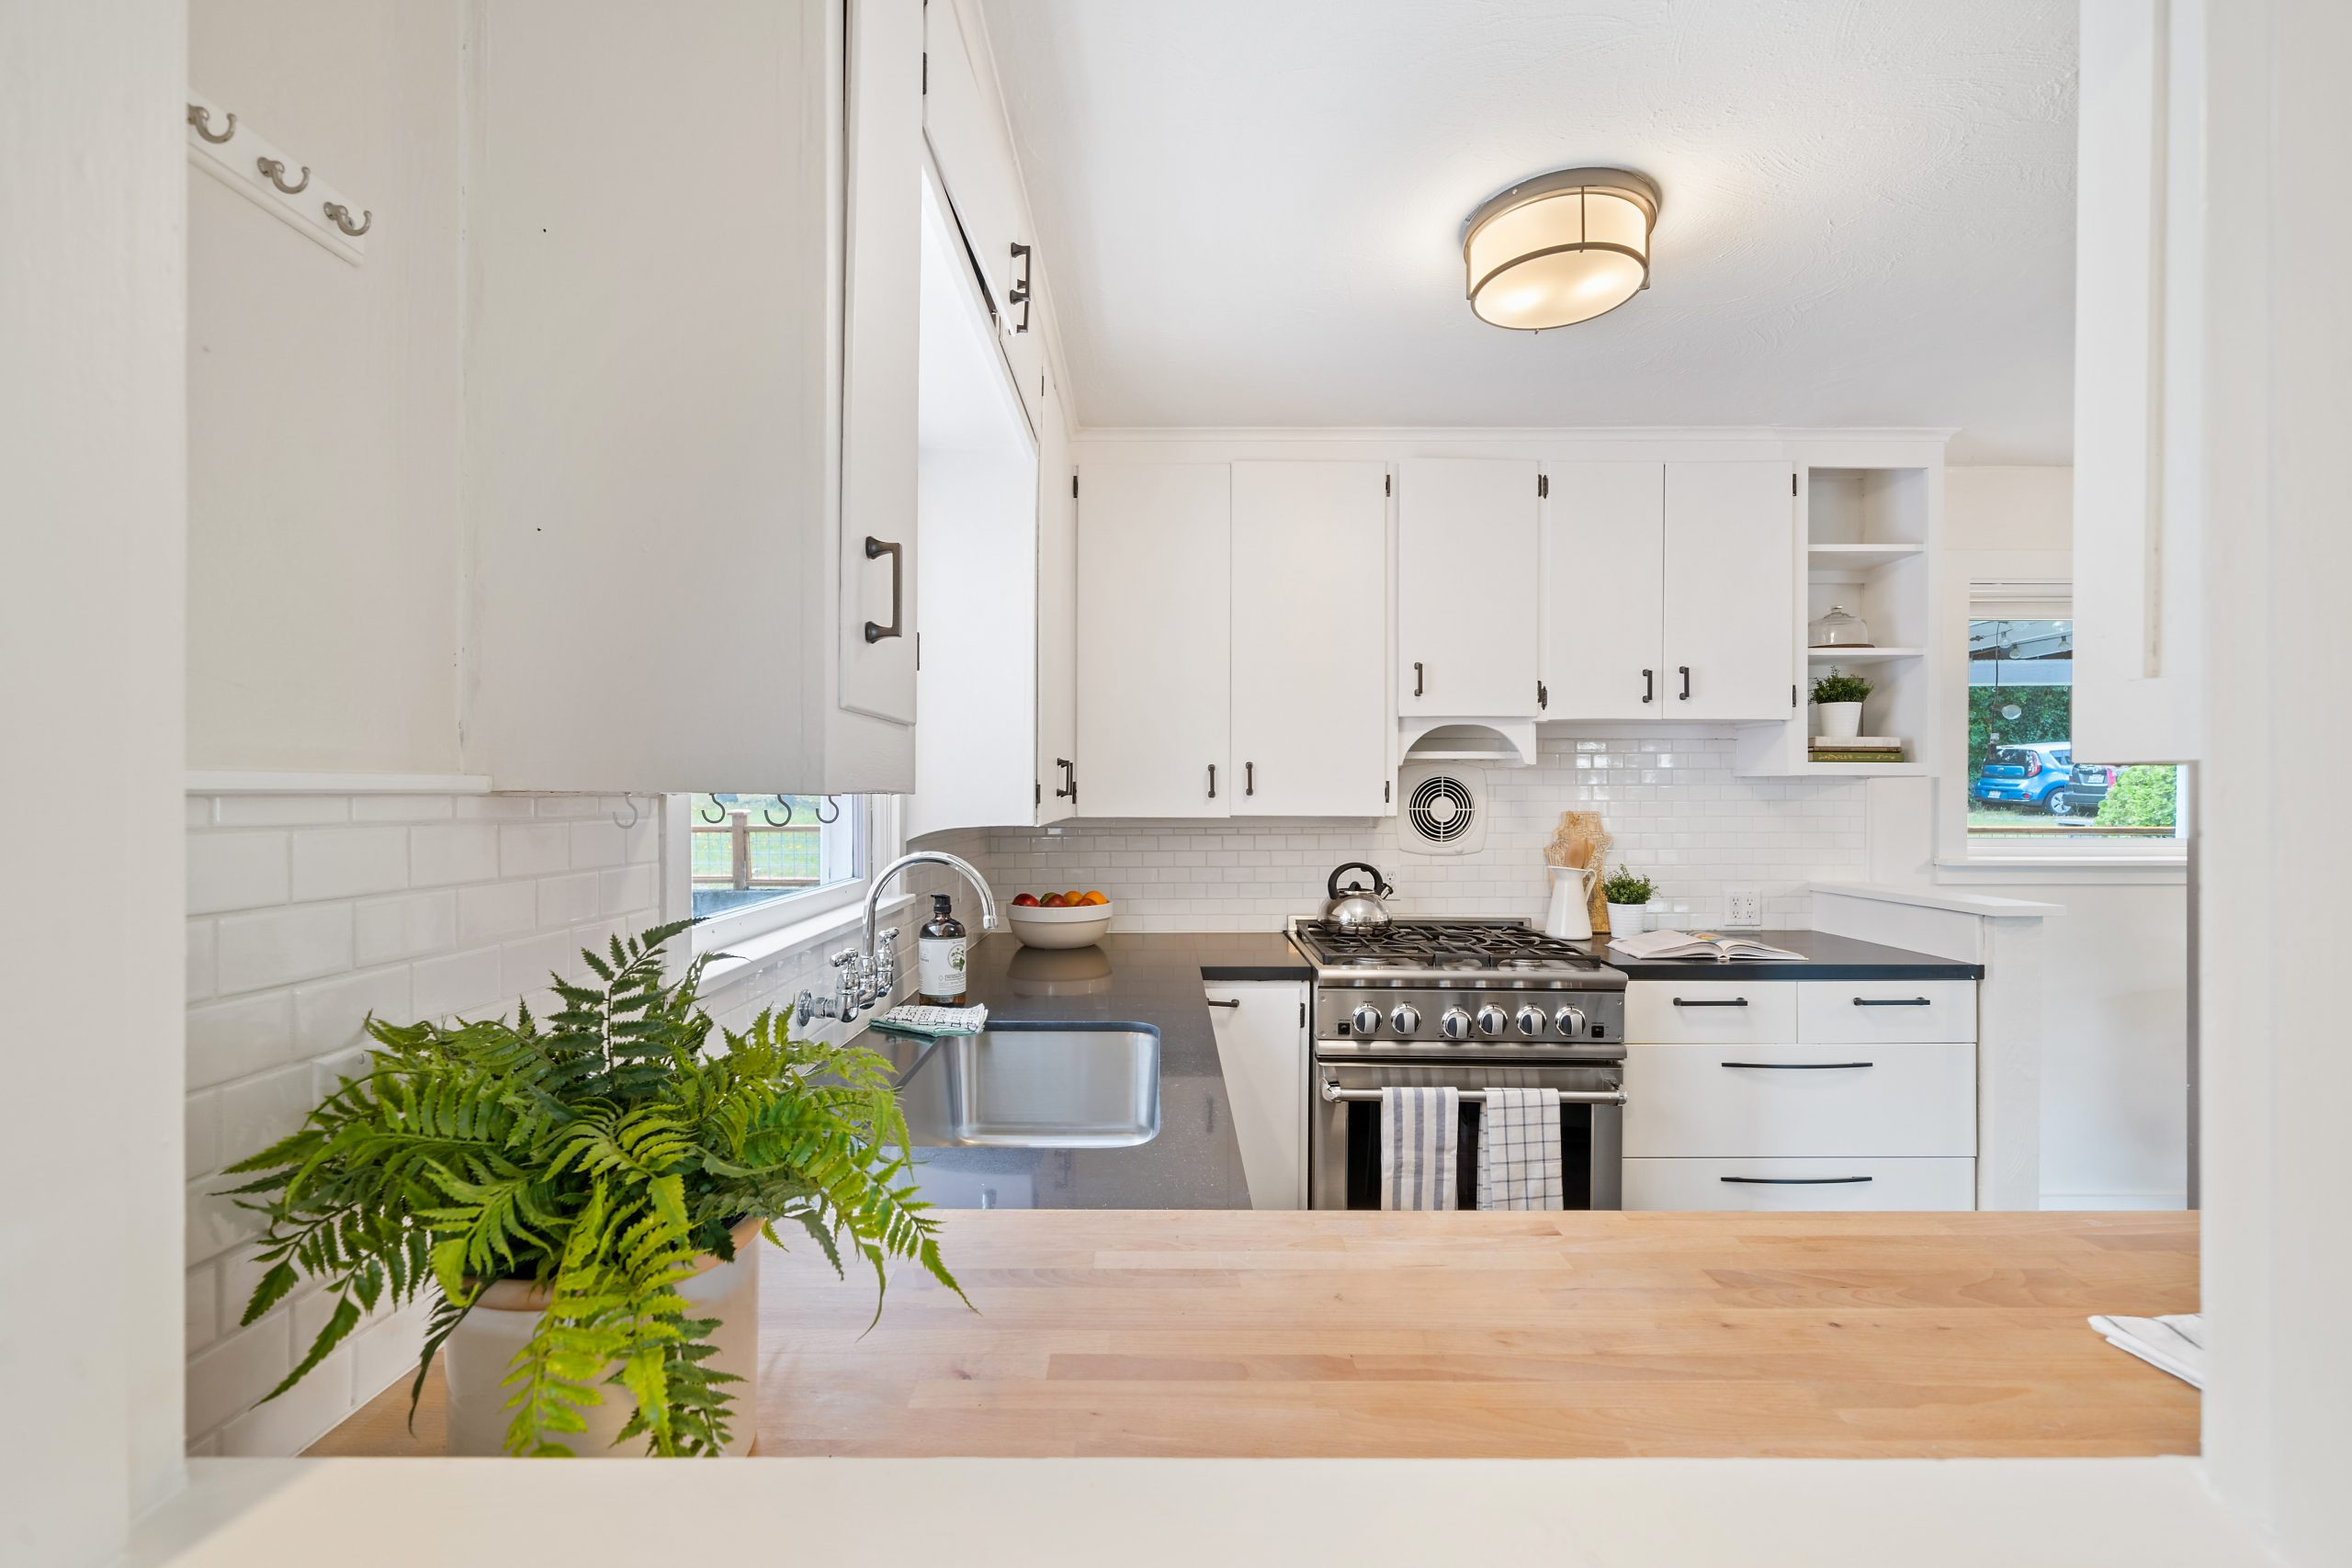 How To Renovate A Kitchen For Less Than 1000 Ross S Discount Home Centre